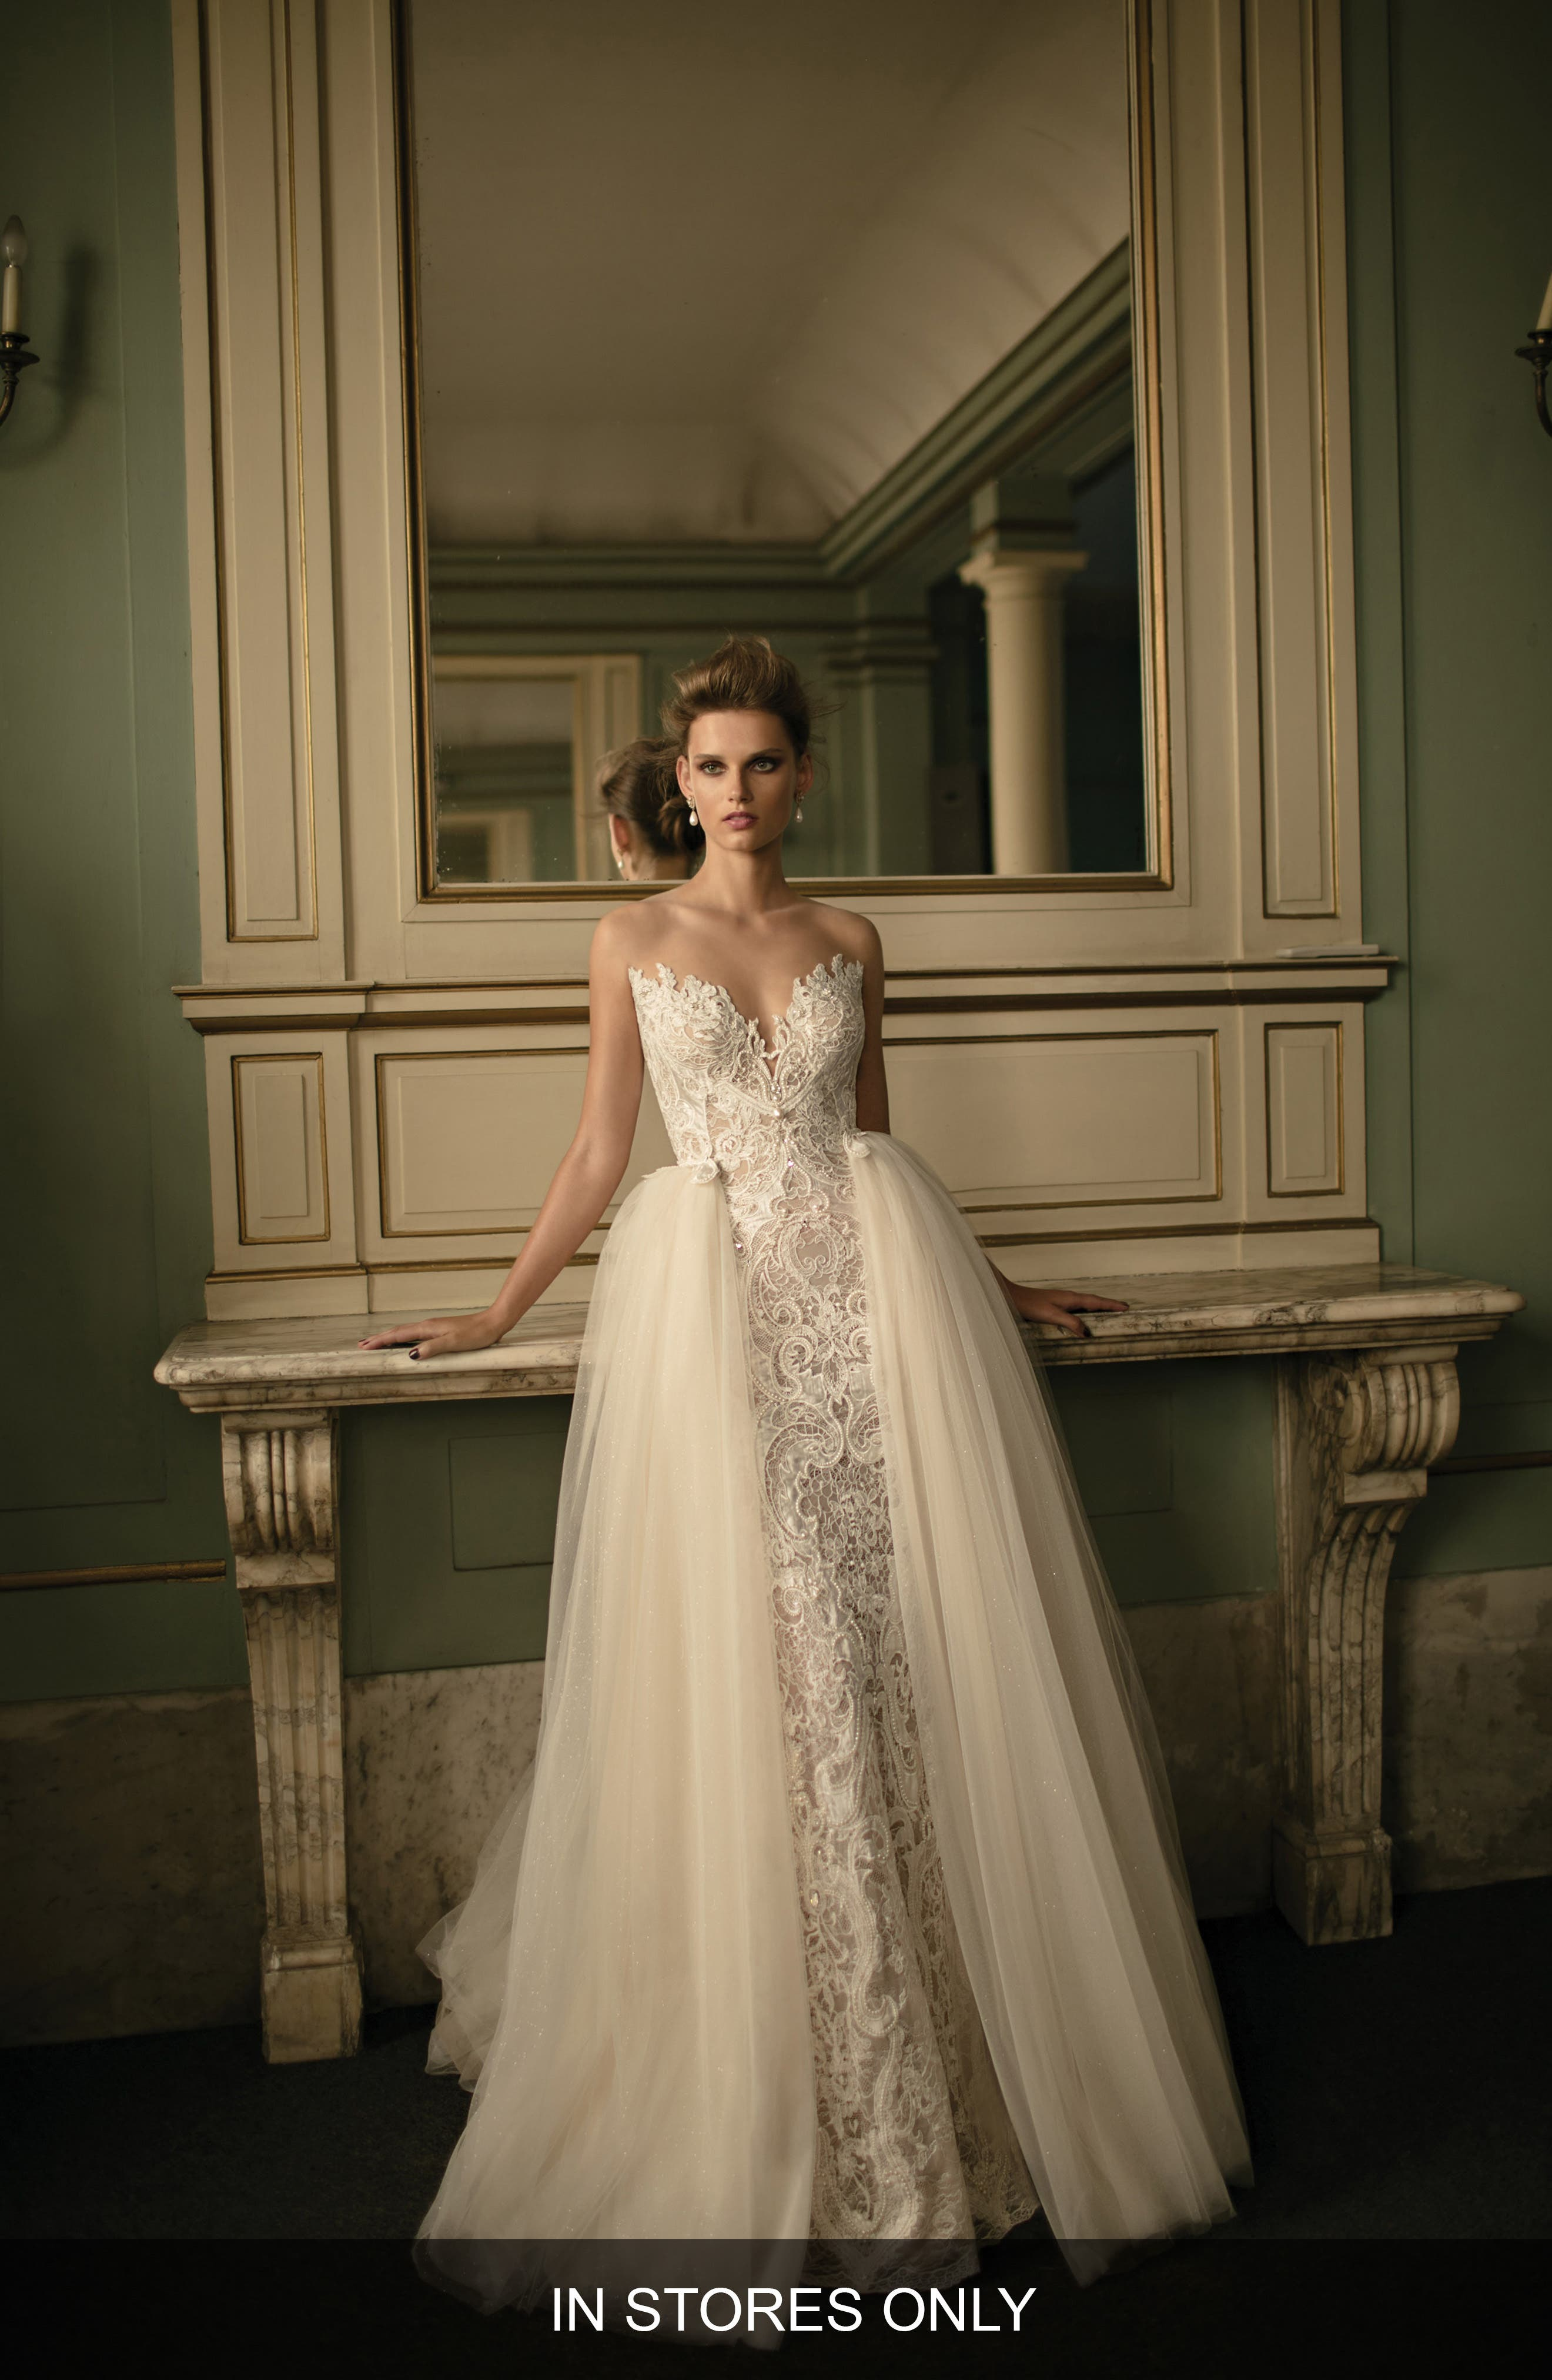 Beaded Lace & Tulle Ballgown,                             Alternate thumbnail 2, color,                             900